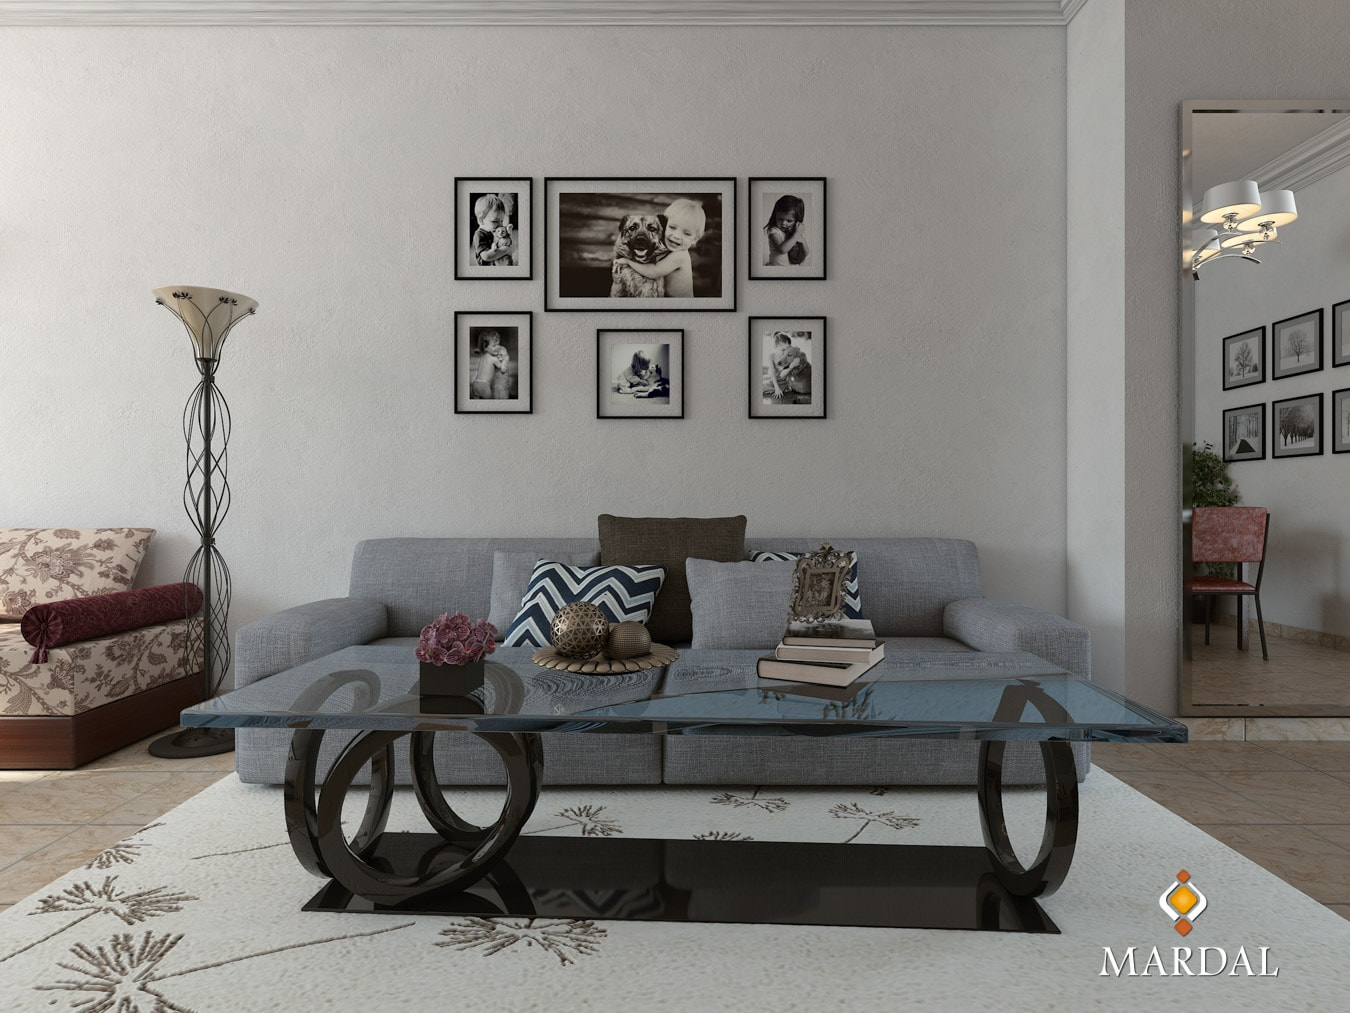 Apartment Interior Table Sofa Salon - 3D Modeling, Visualization and Interactive Apps - Copyright Mardal S.A.R.L.